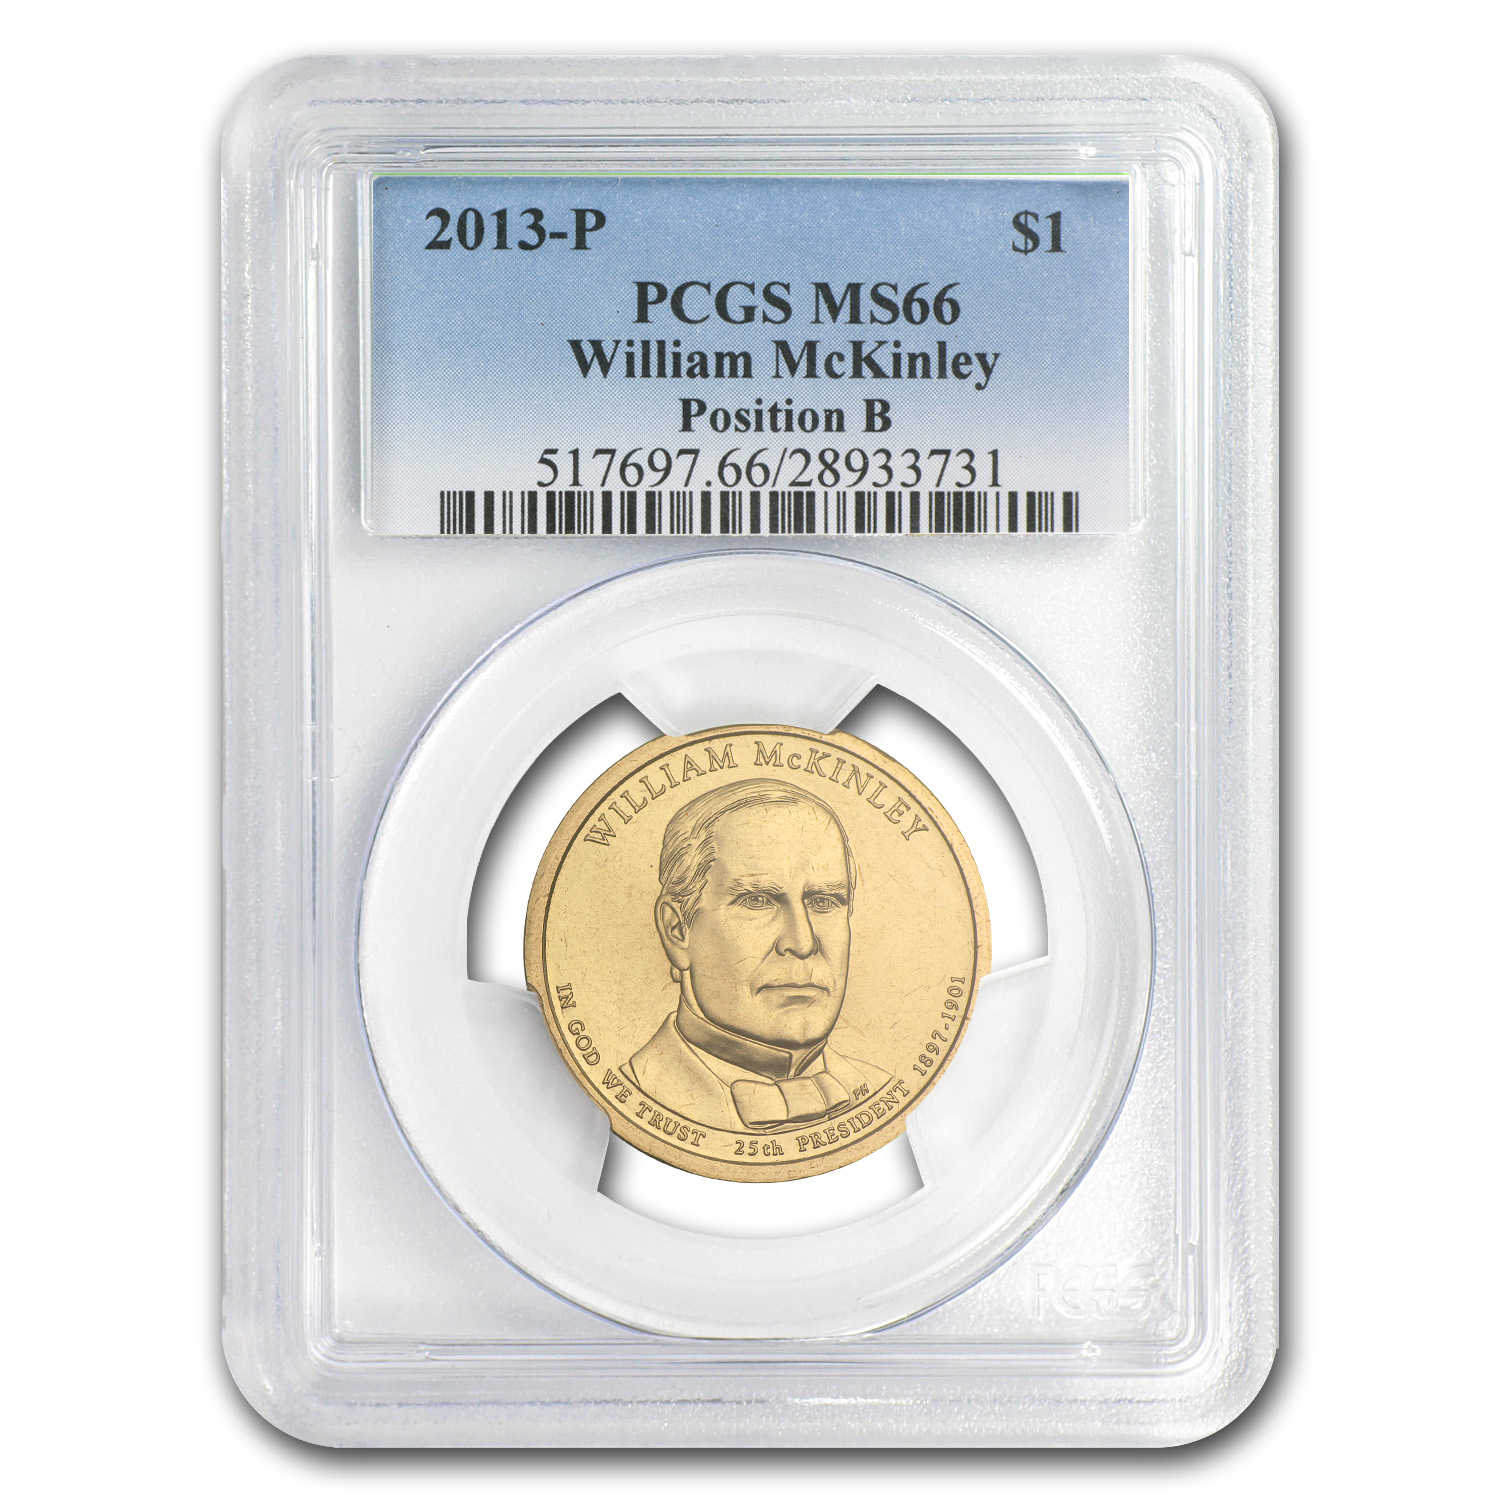 2013-P B Position Wm McKinley Presidential Dollar MS-66 PCGS